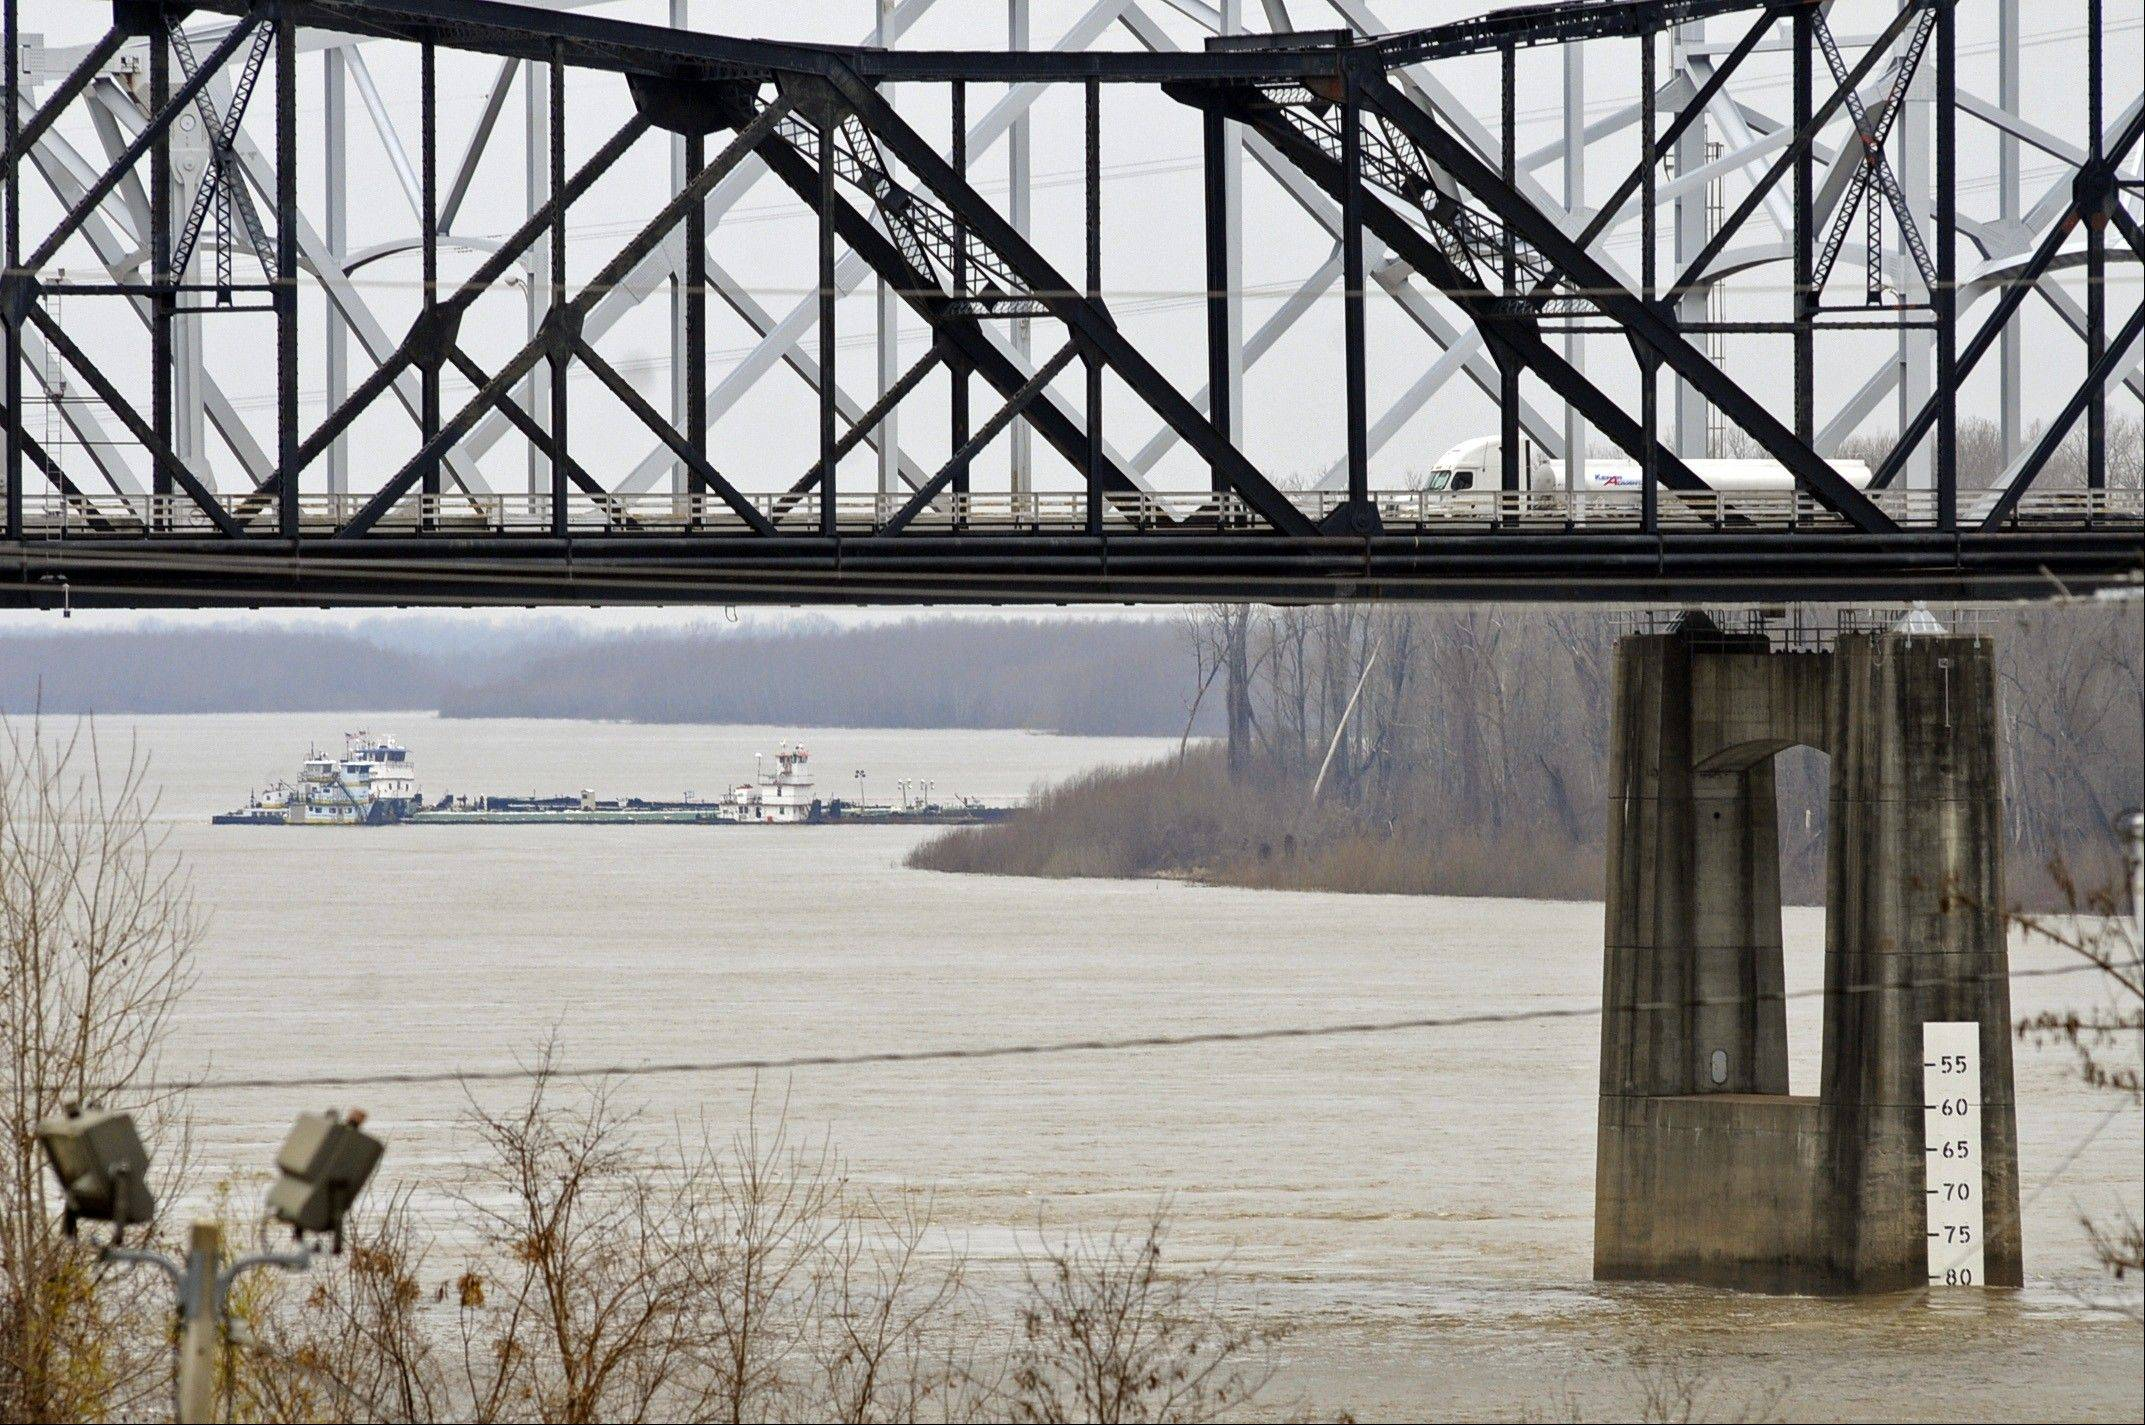 Cleanup crews with booms skimmed oily water from the Mississippi River Monday, a day after a barge with more than 80,000 gallons of oil struck a railroad bridge near Vicksburg, spreading a sheen of light crude that kept part of the waterway shut to ship traffic Monday, authorities said.